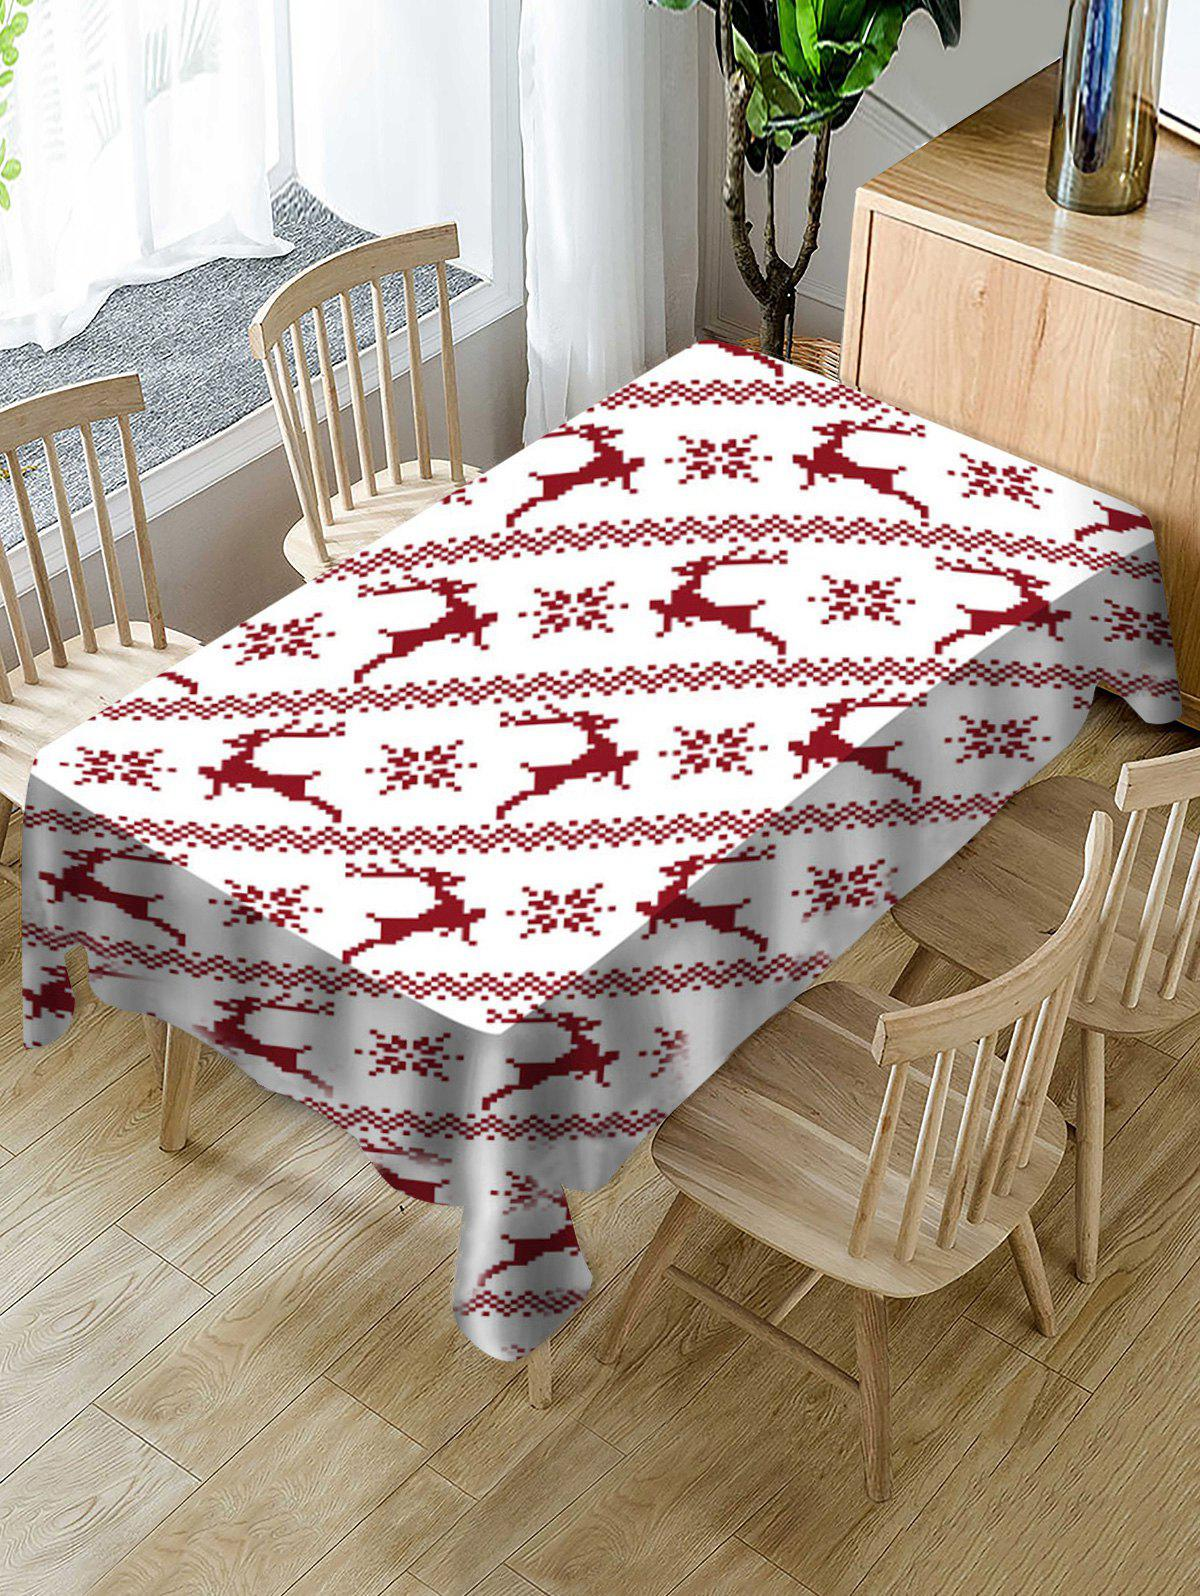 Unique Christmas Deer Fabric Waterproof Table Cloth